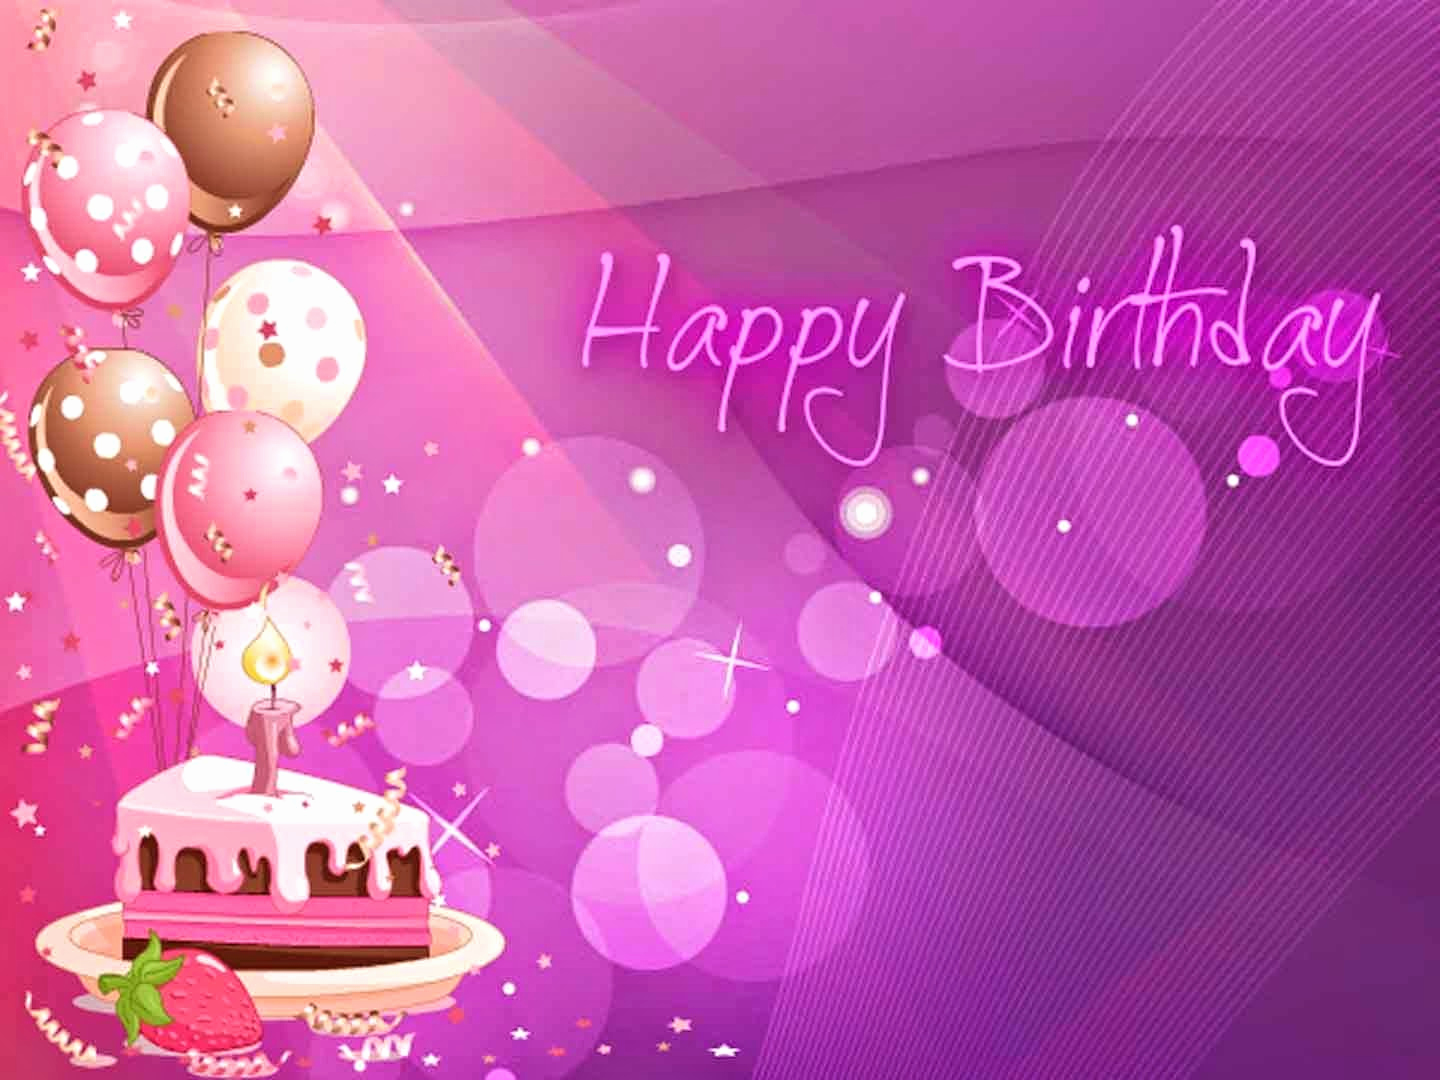 Happy Bday Wallpapers Free Luxury Happy Birthday Wallpapers